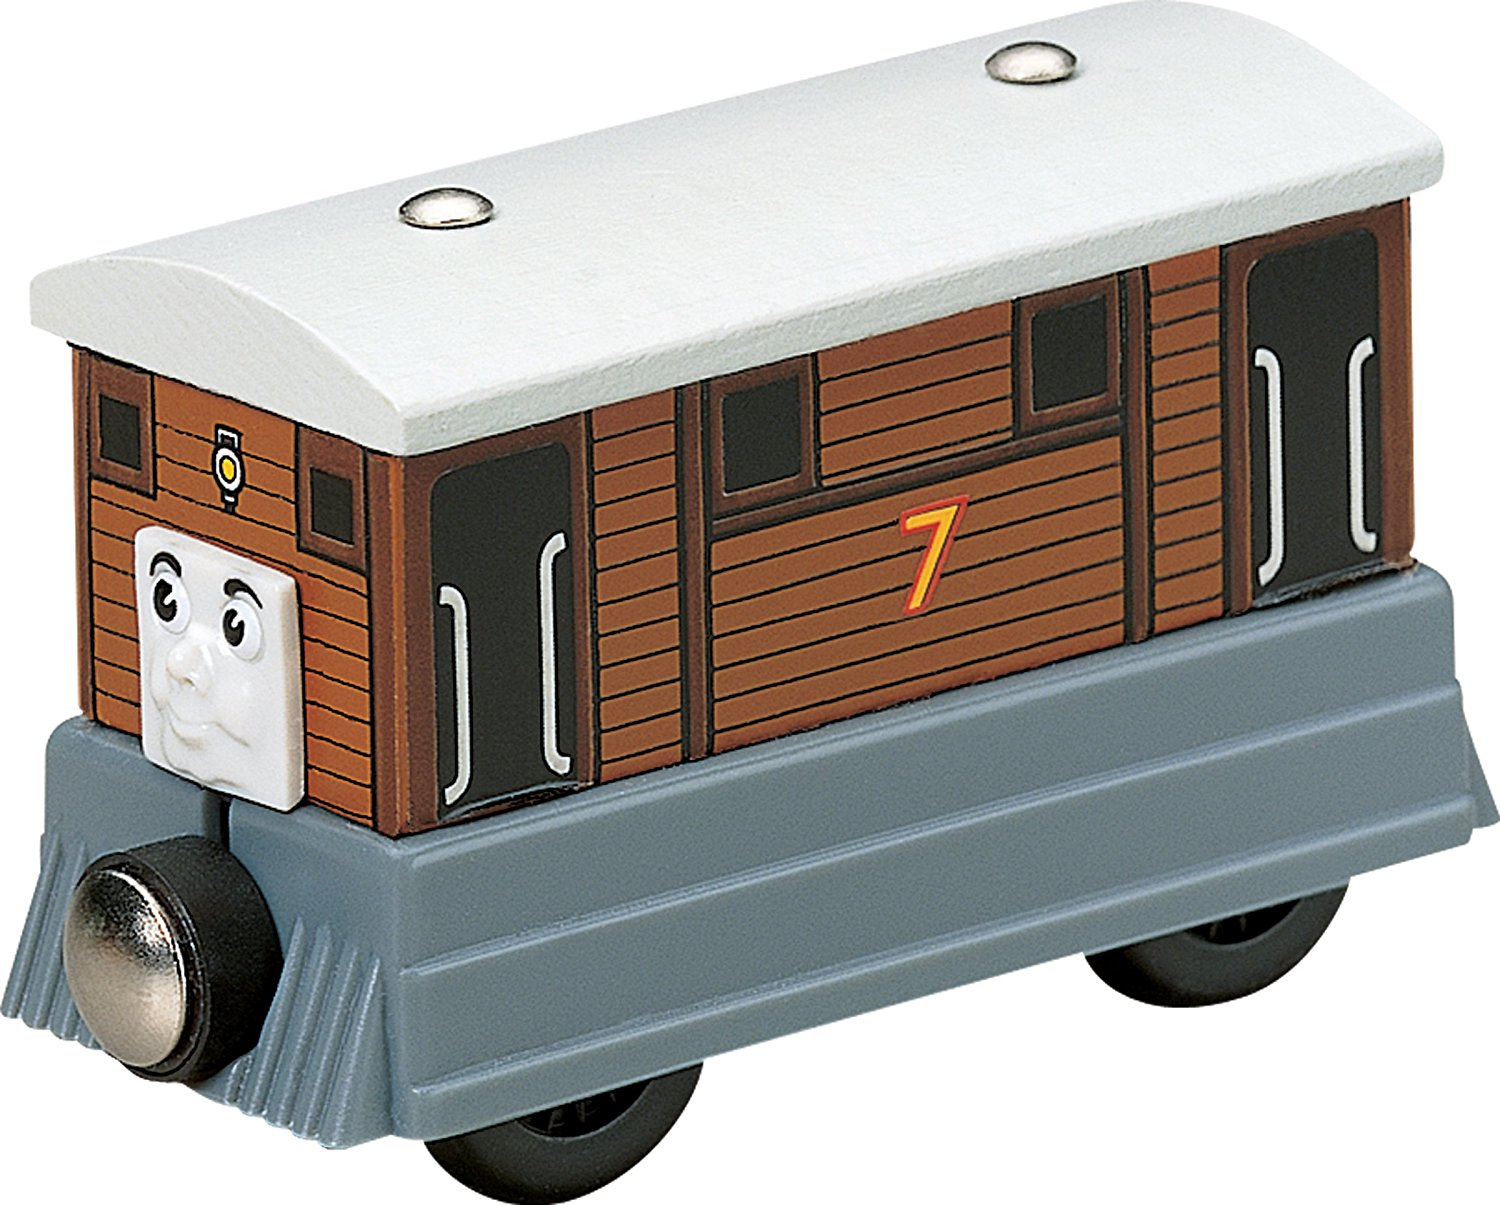 File:WoodenToby.jpg